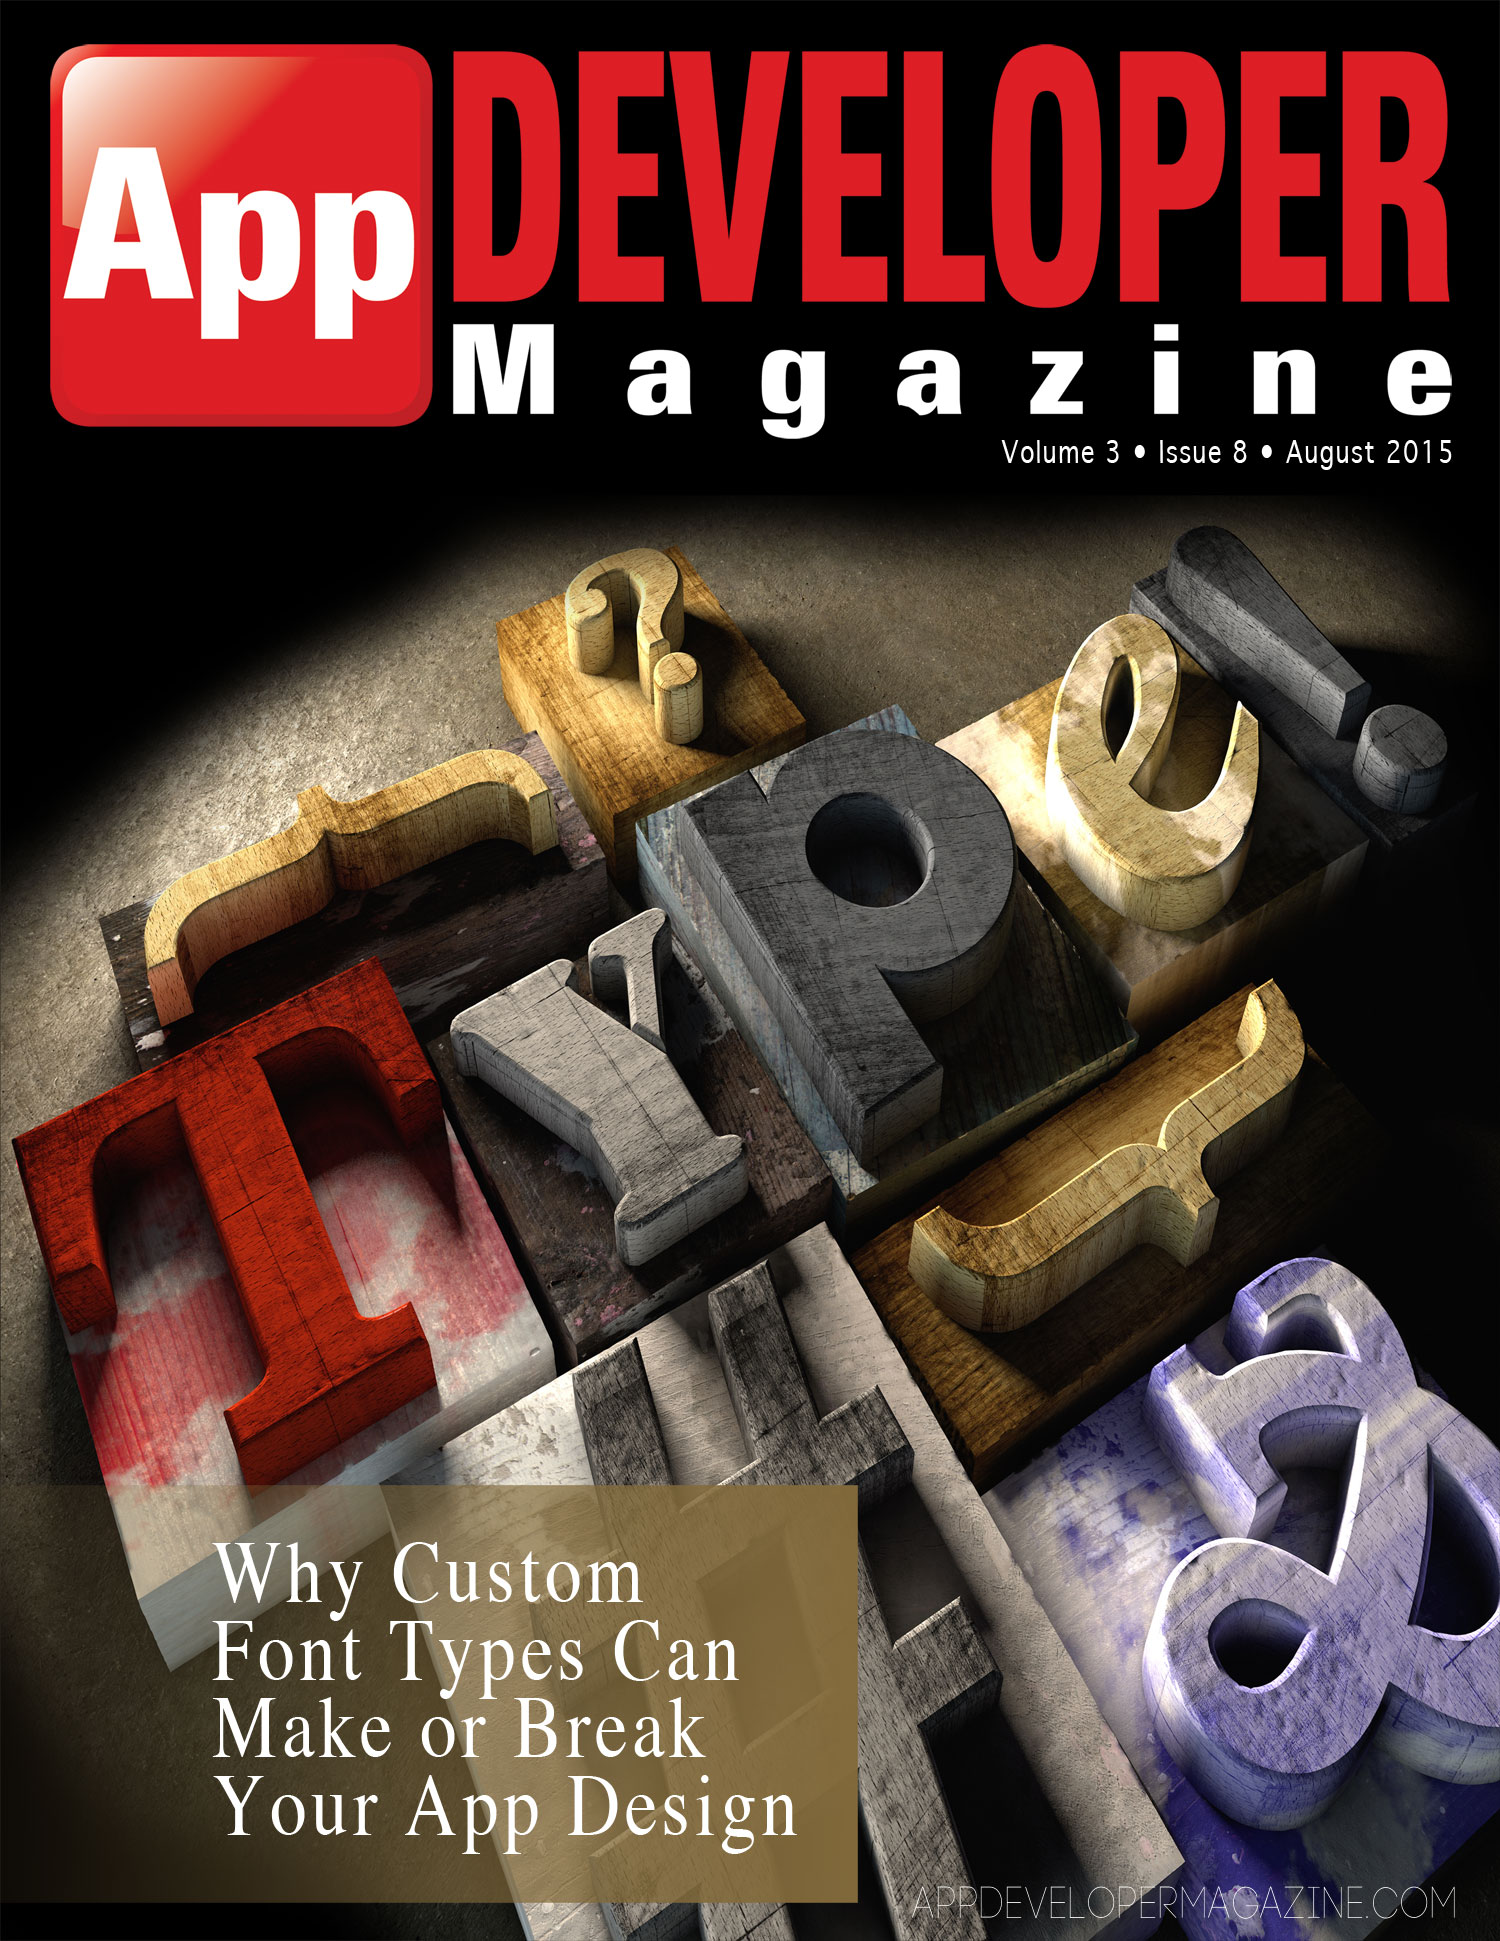 Read App Developer Magazine August 2015 issue